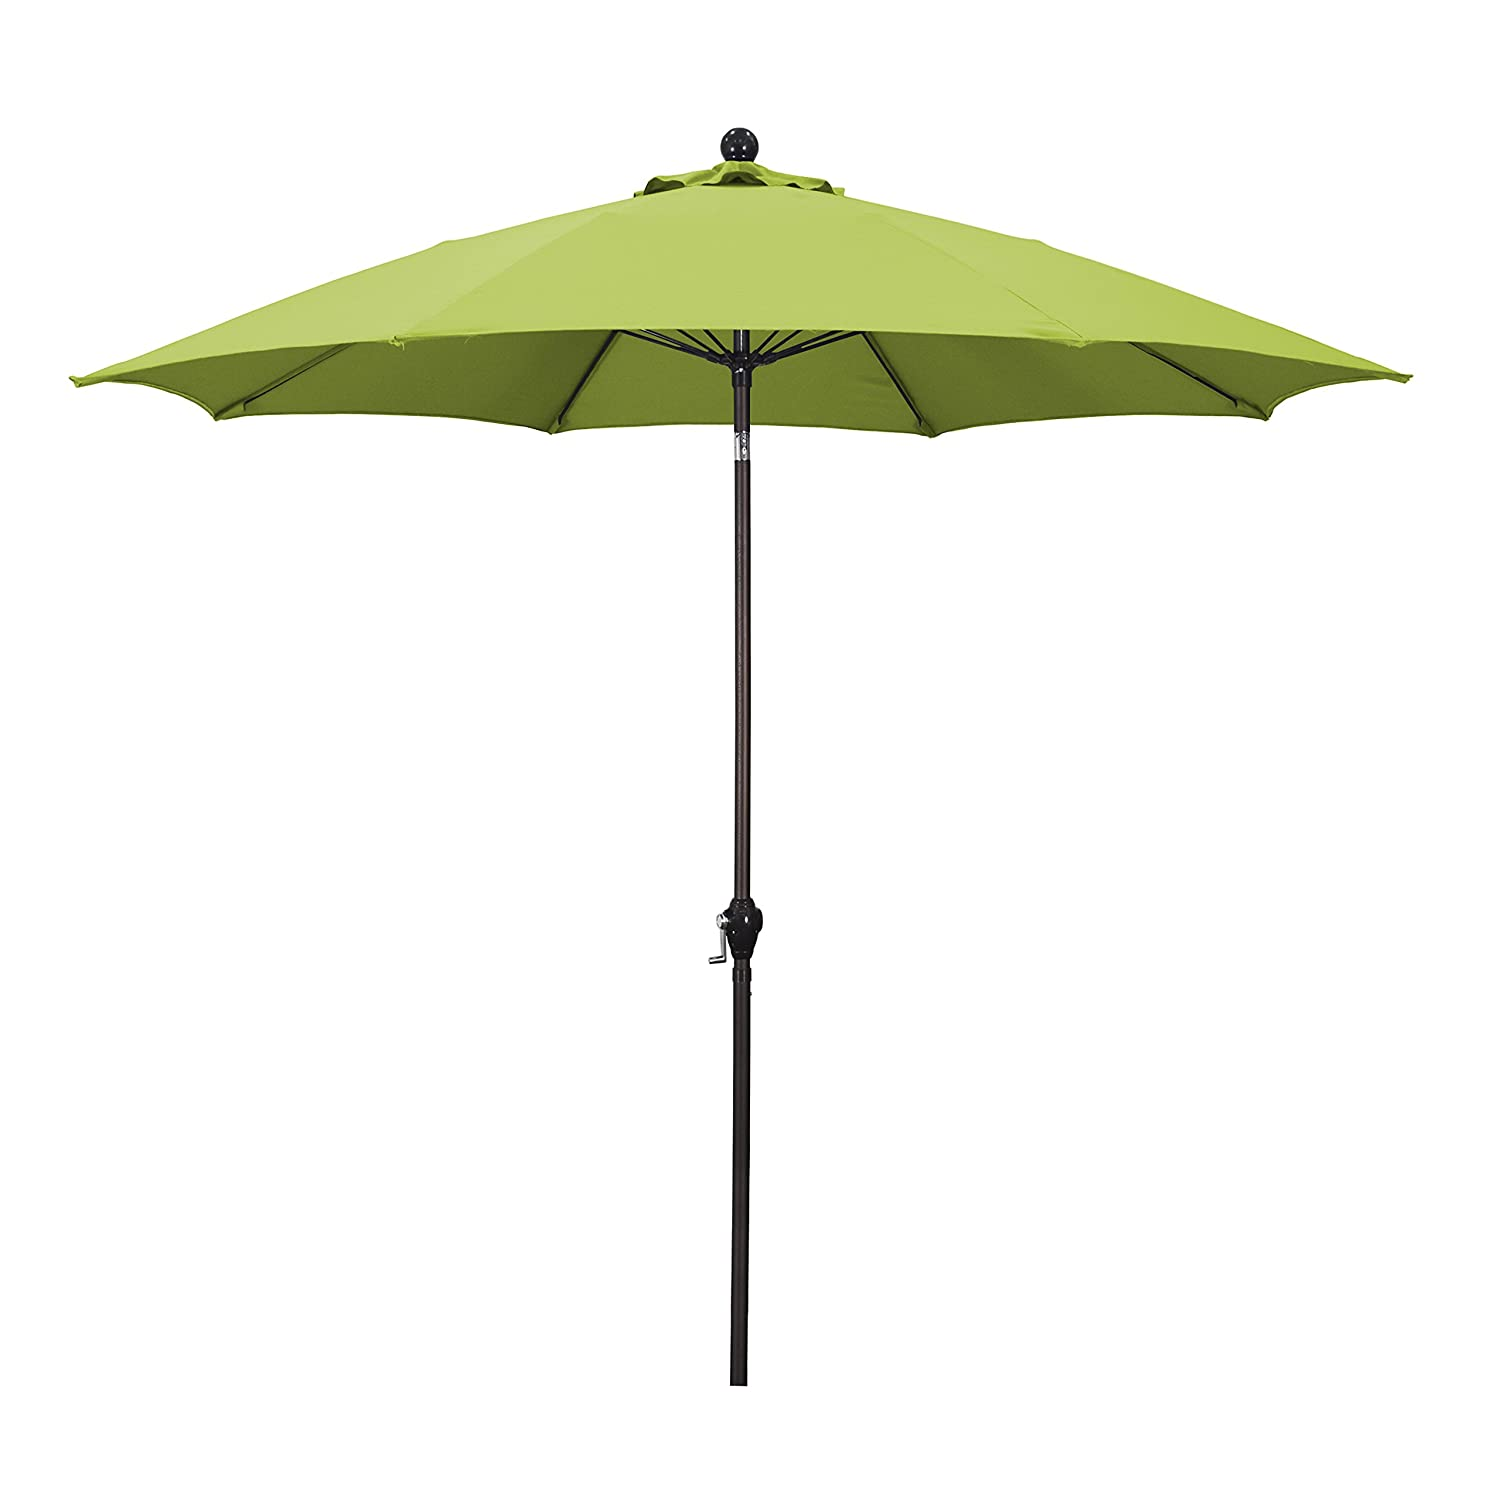 Amazon.com : California Umbrella 9u0027 Round Aluminum Pole Fiberglass Rib  Umbrella, Crank Open, Push Button 3 Way Tilt, Bronze Pole, Lime Green :  Patio ...